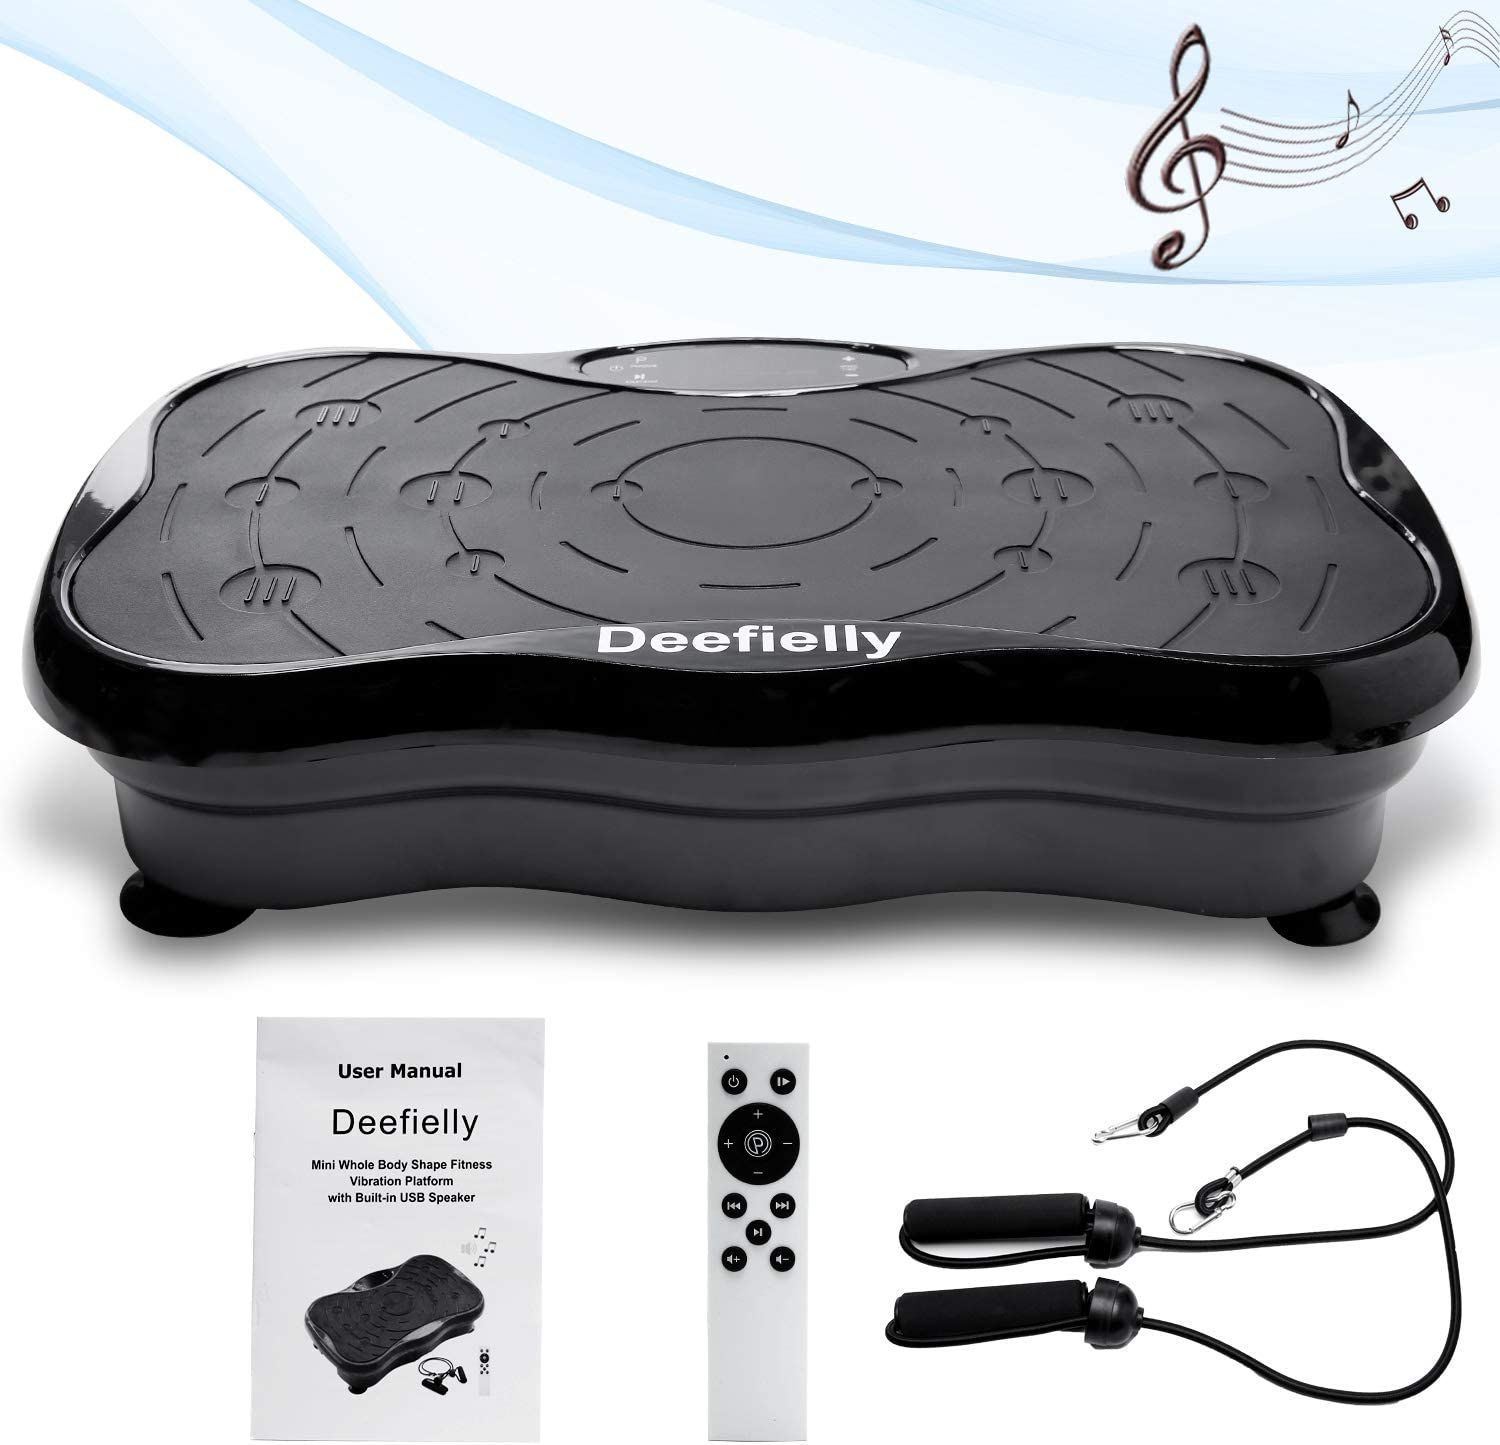 Deefielly Mini Vibration Plate Exercise Machine Whole Body Workout Fitness Vibration Platform Machine Home Training Equipment for Adult Weight Loss with Bluetooth Speaker